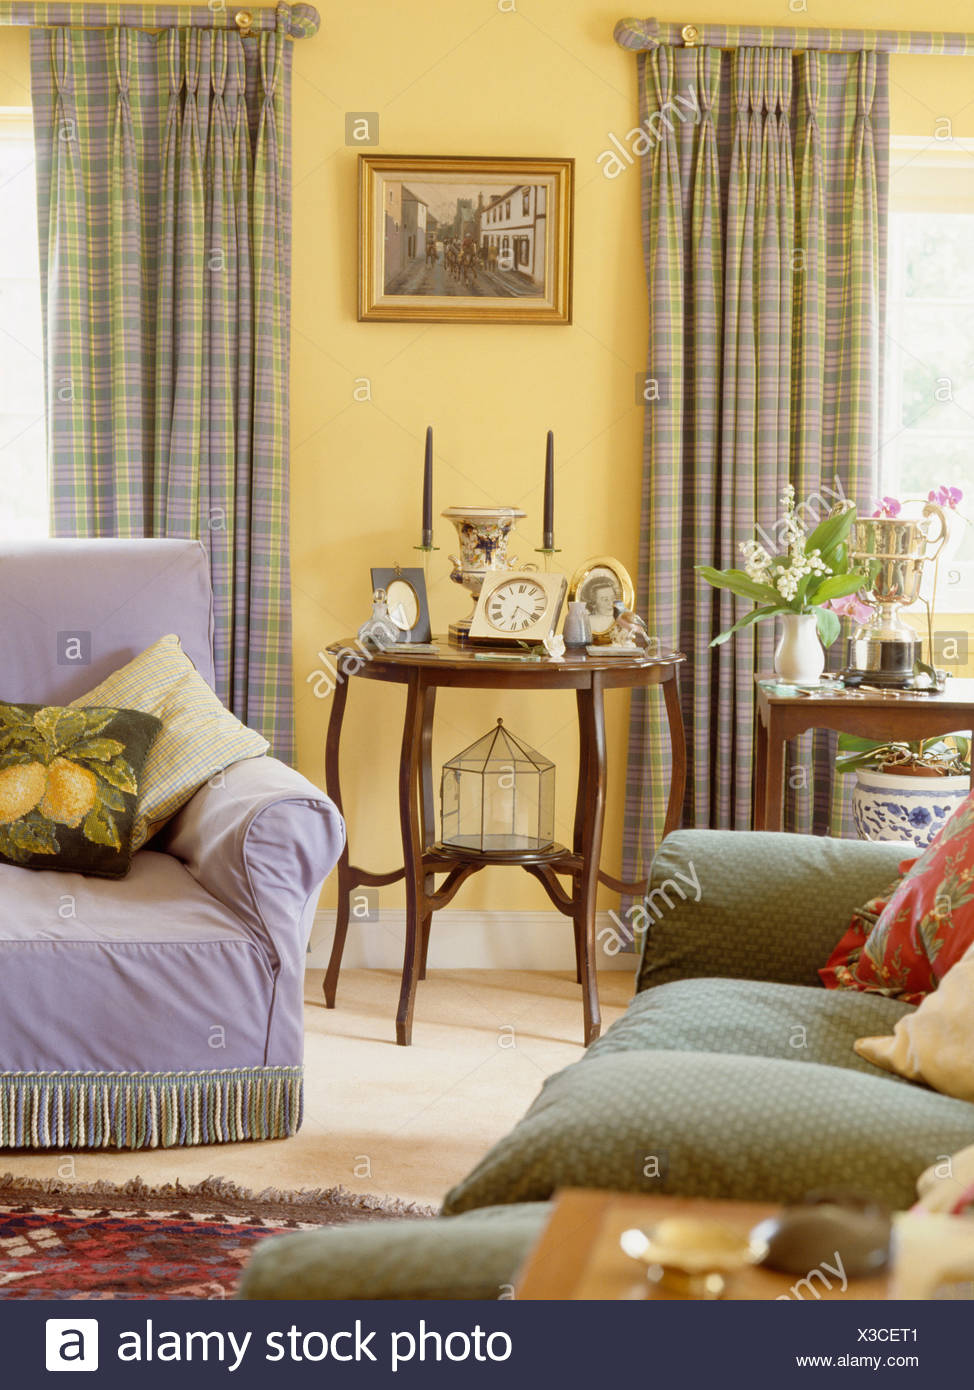 Green Sofa And Mauve Armchair In Pastel Yellow Living Room With Mauve And  Yellow Checked Curtains